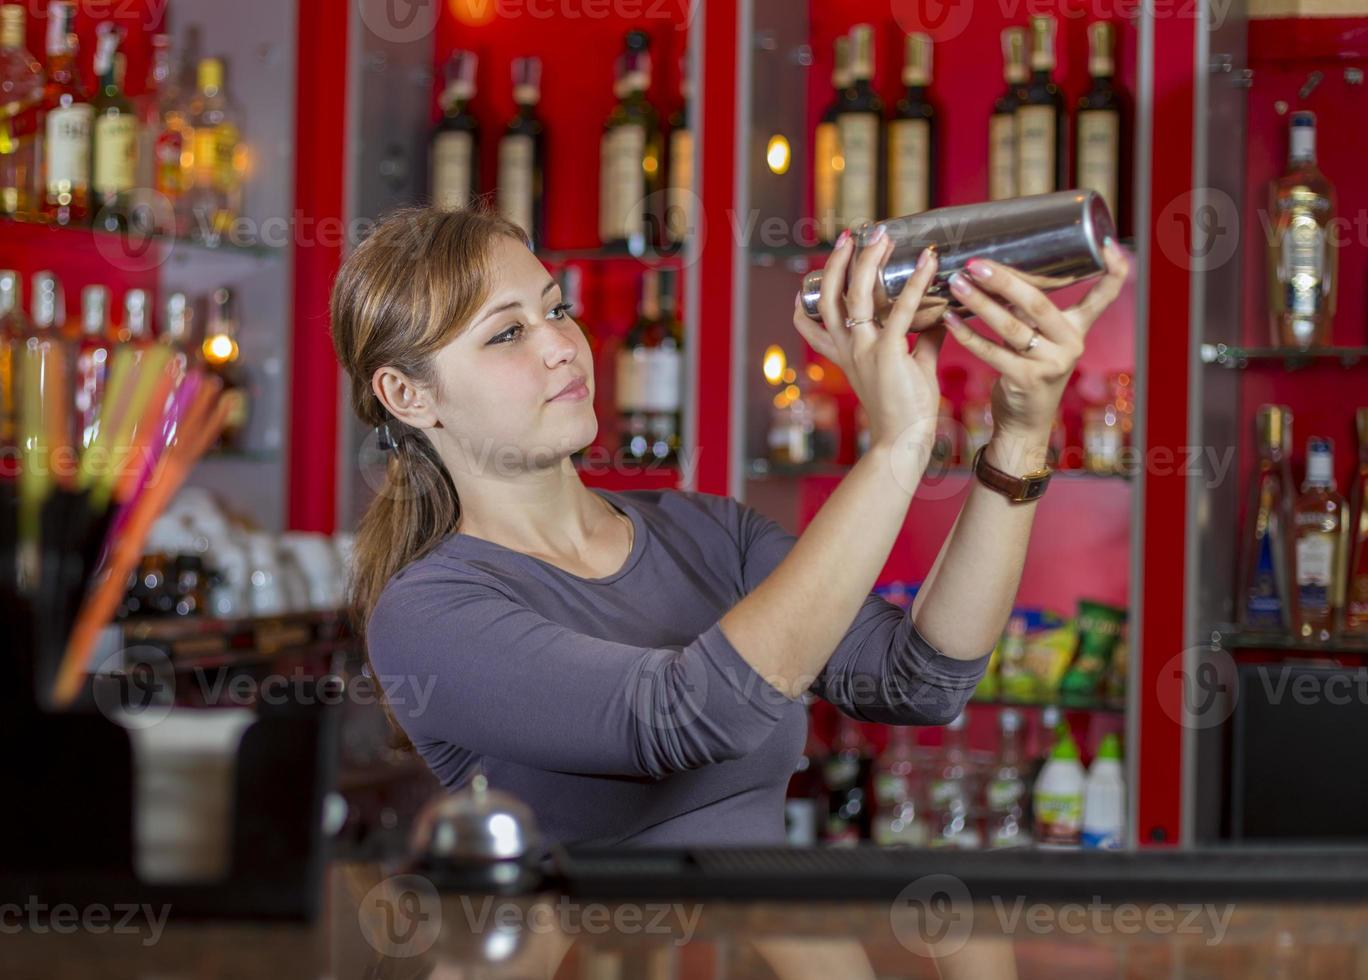 Bartender girl behind the counter photo